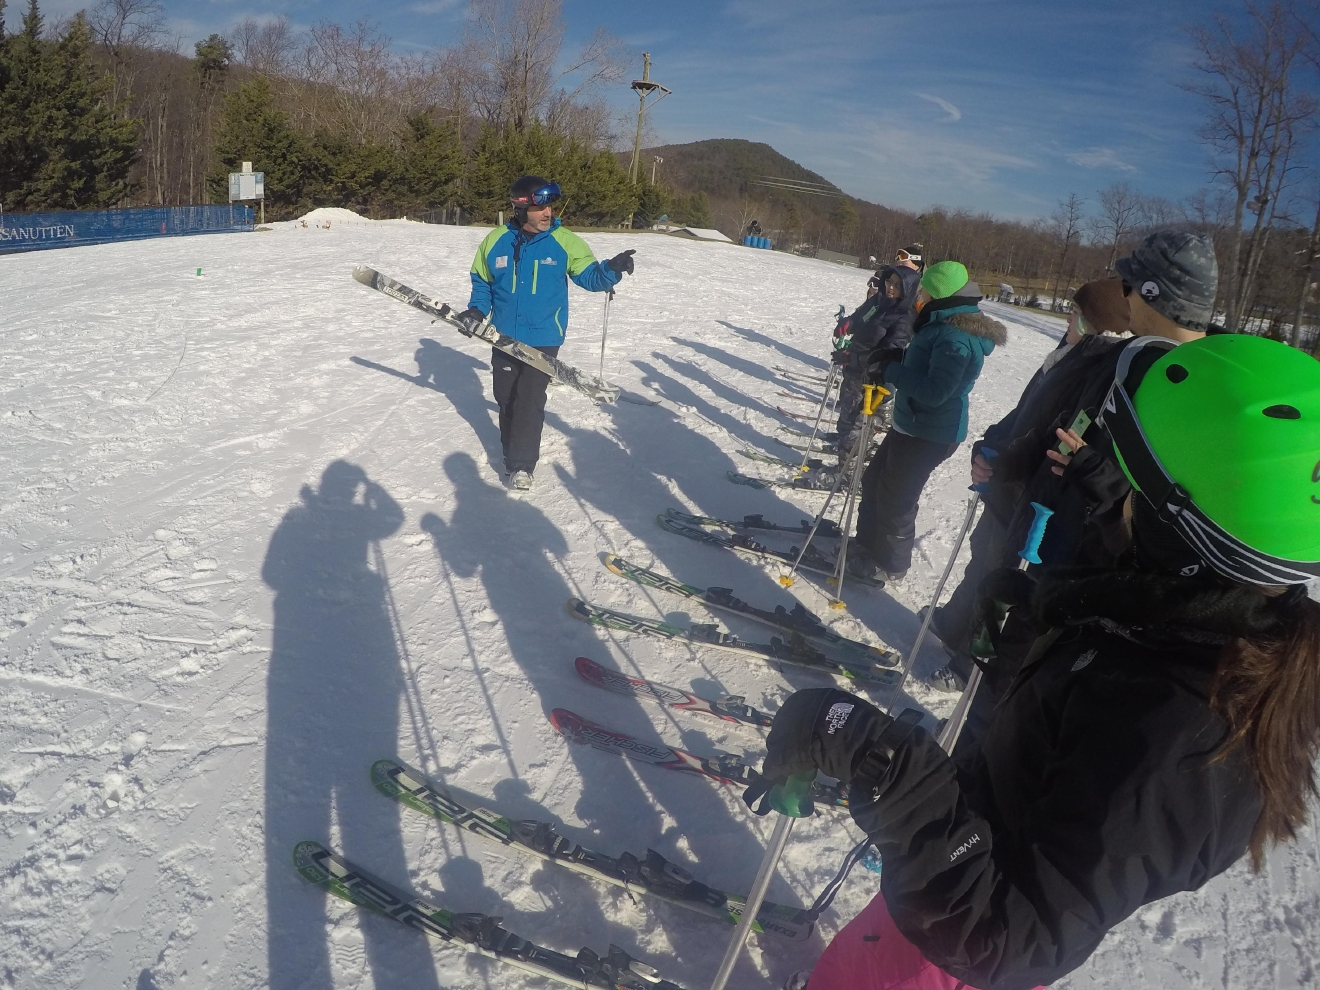 Brian Fortner teaches his students the basics of skiing. (Amanda Andrade-Rhoades/DC Refined)